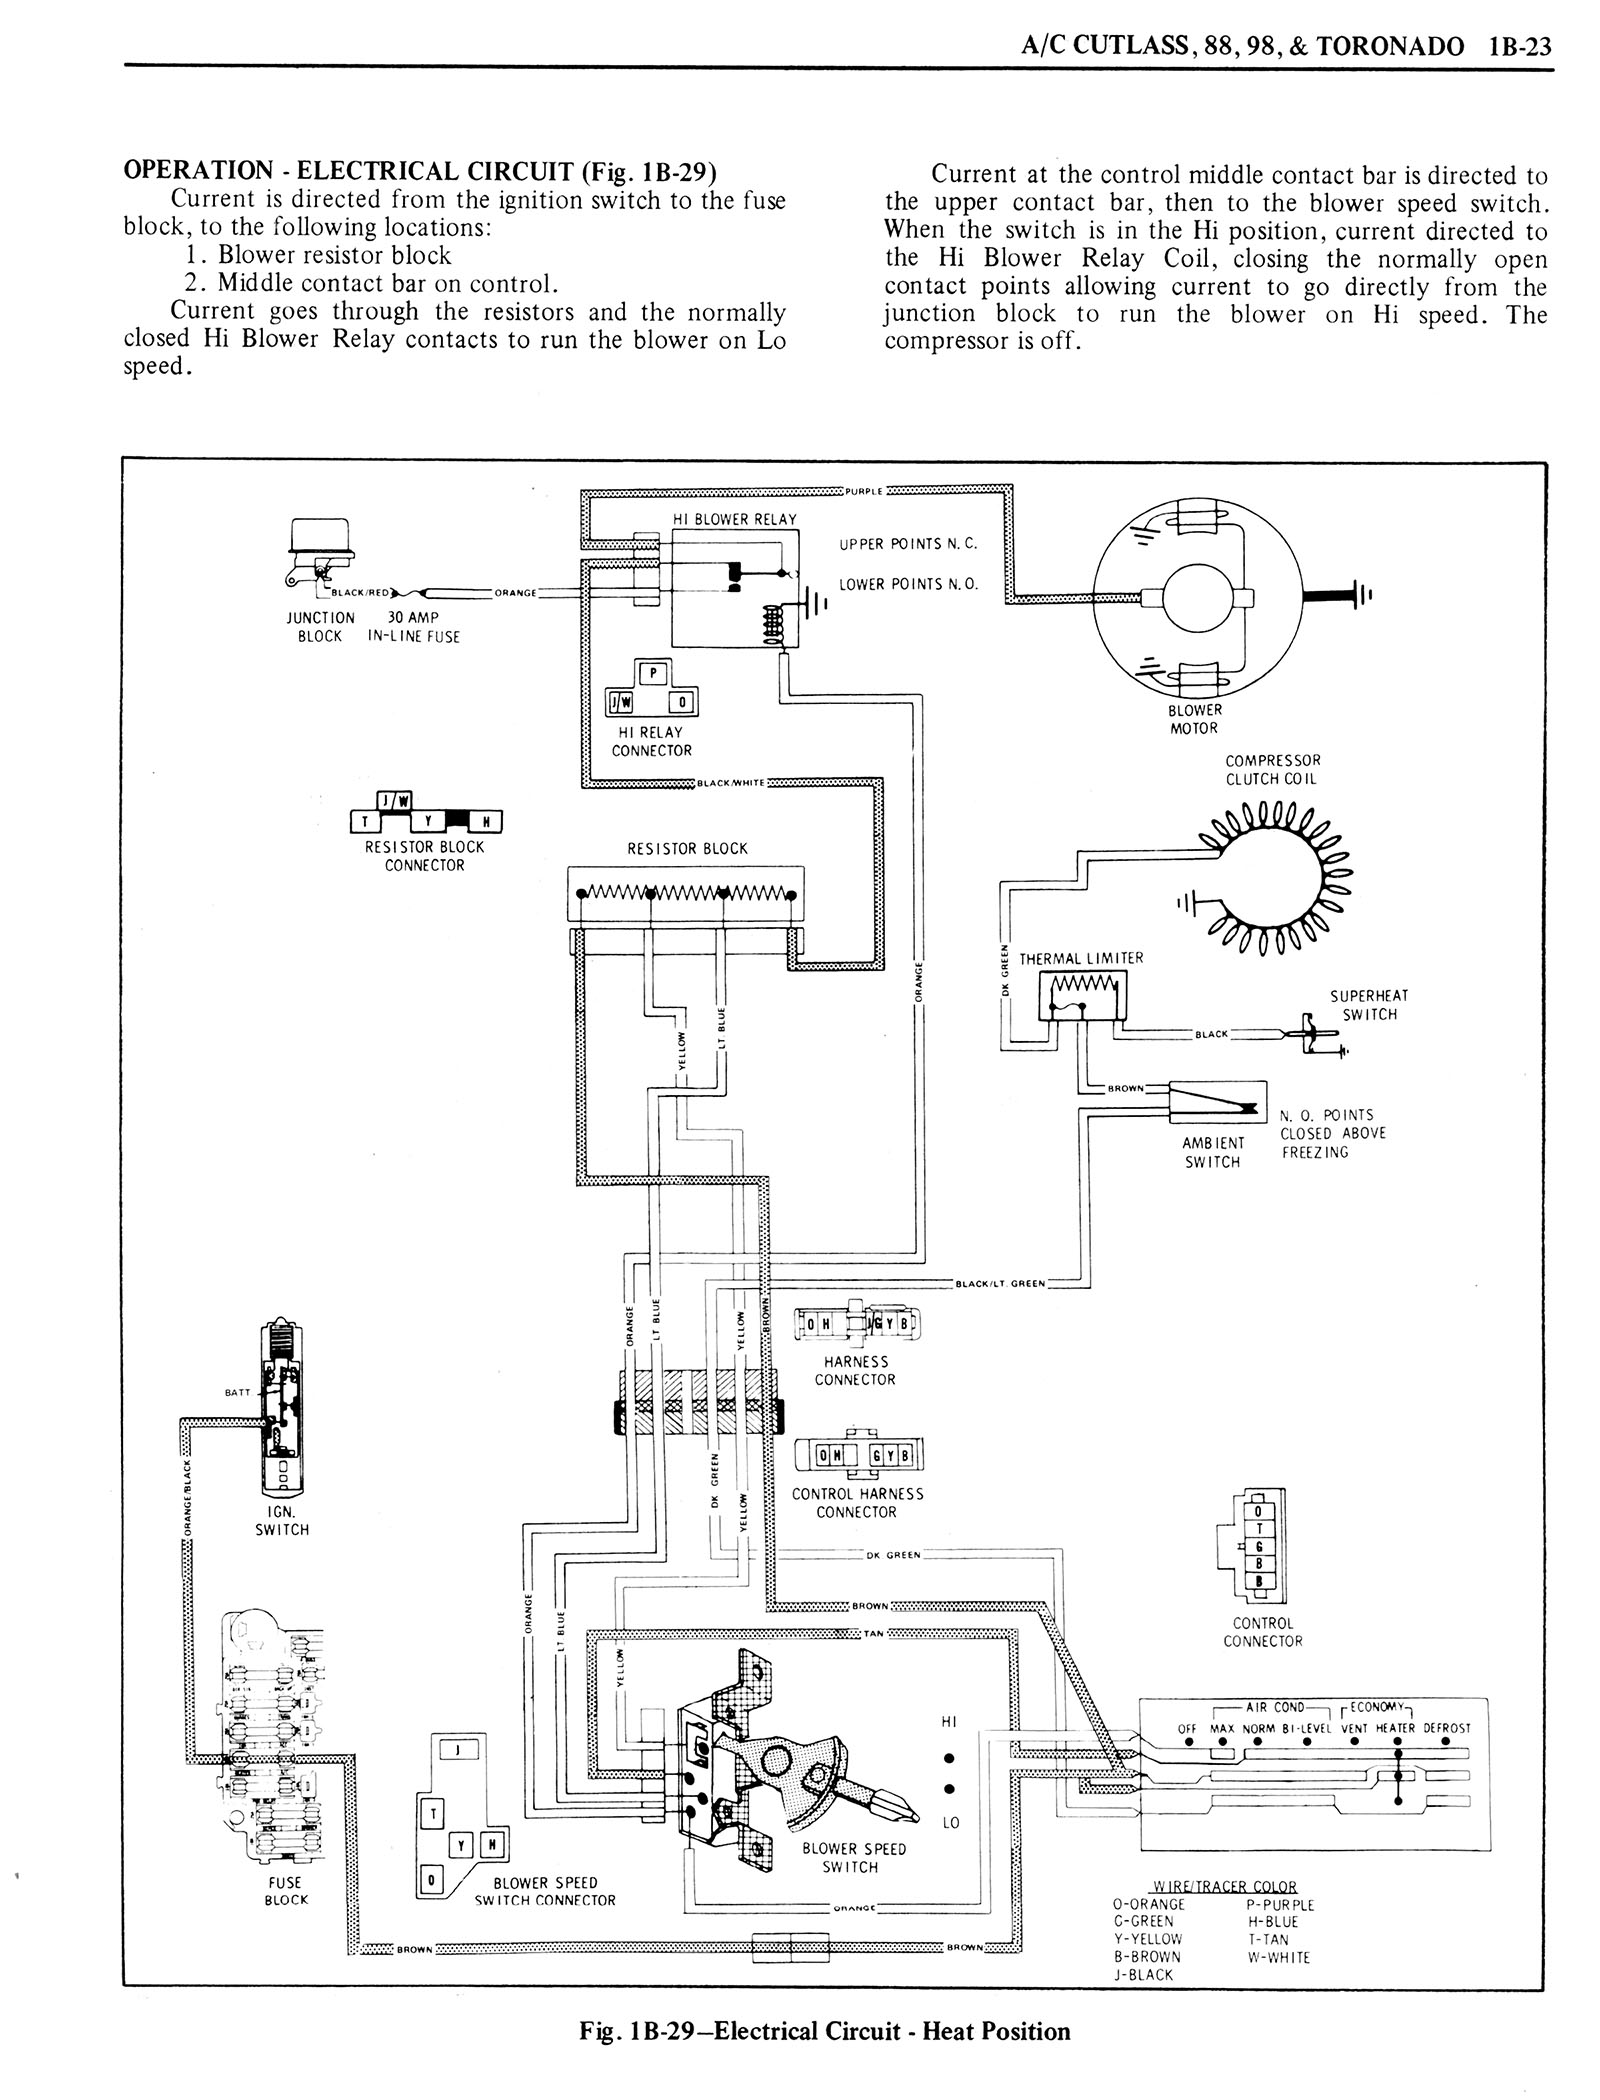 1976 Oldsmobile Service Manual page 121 of 1390